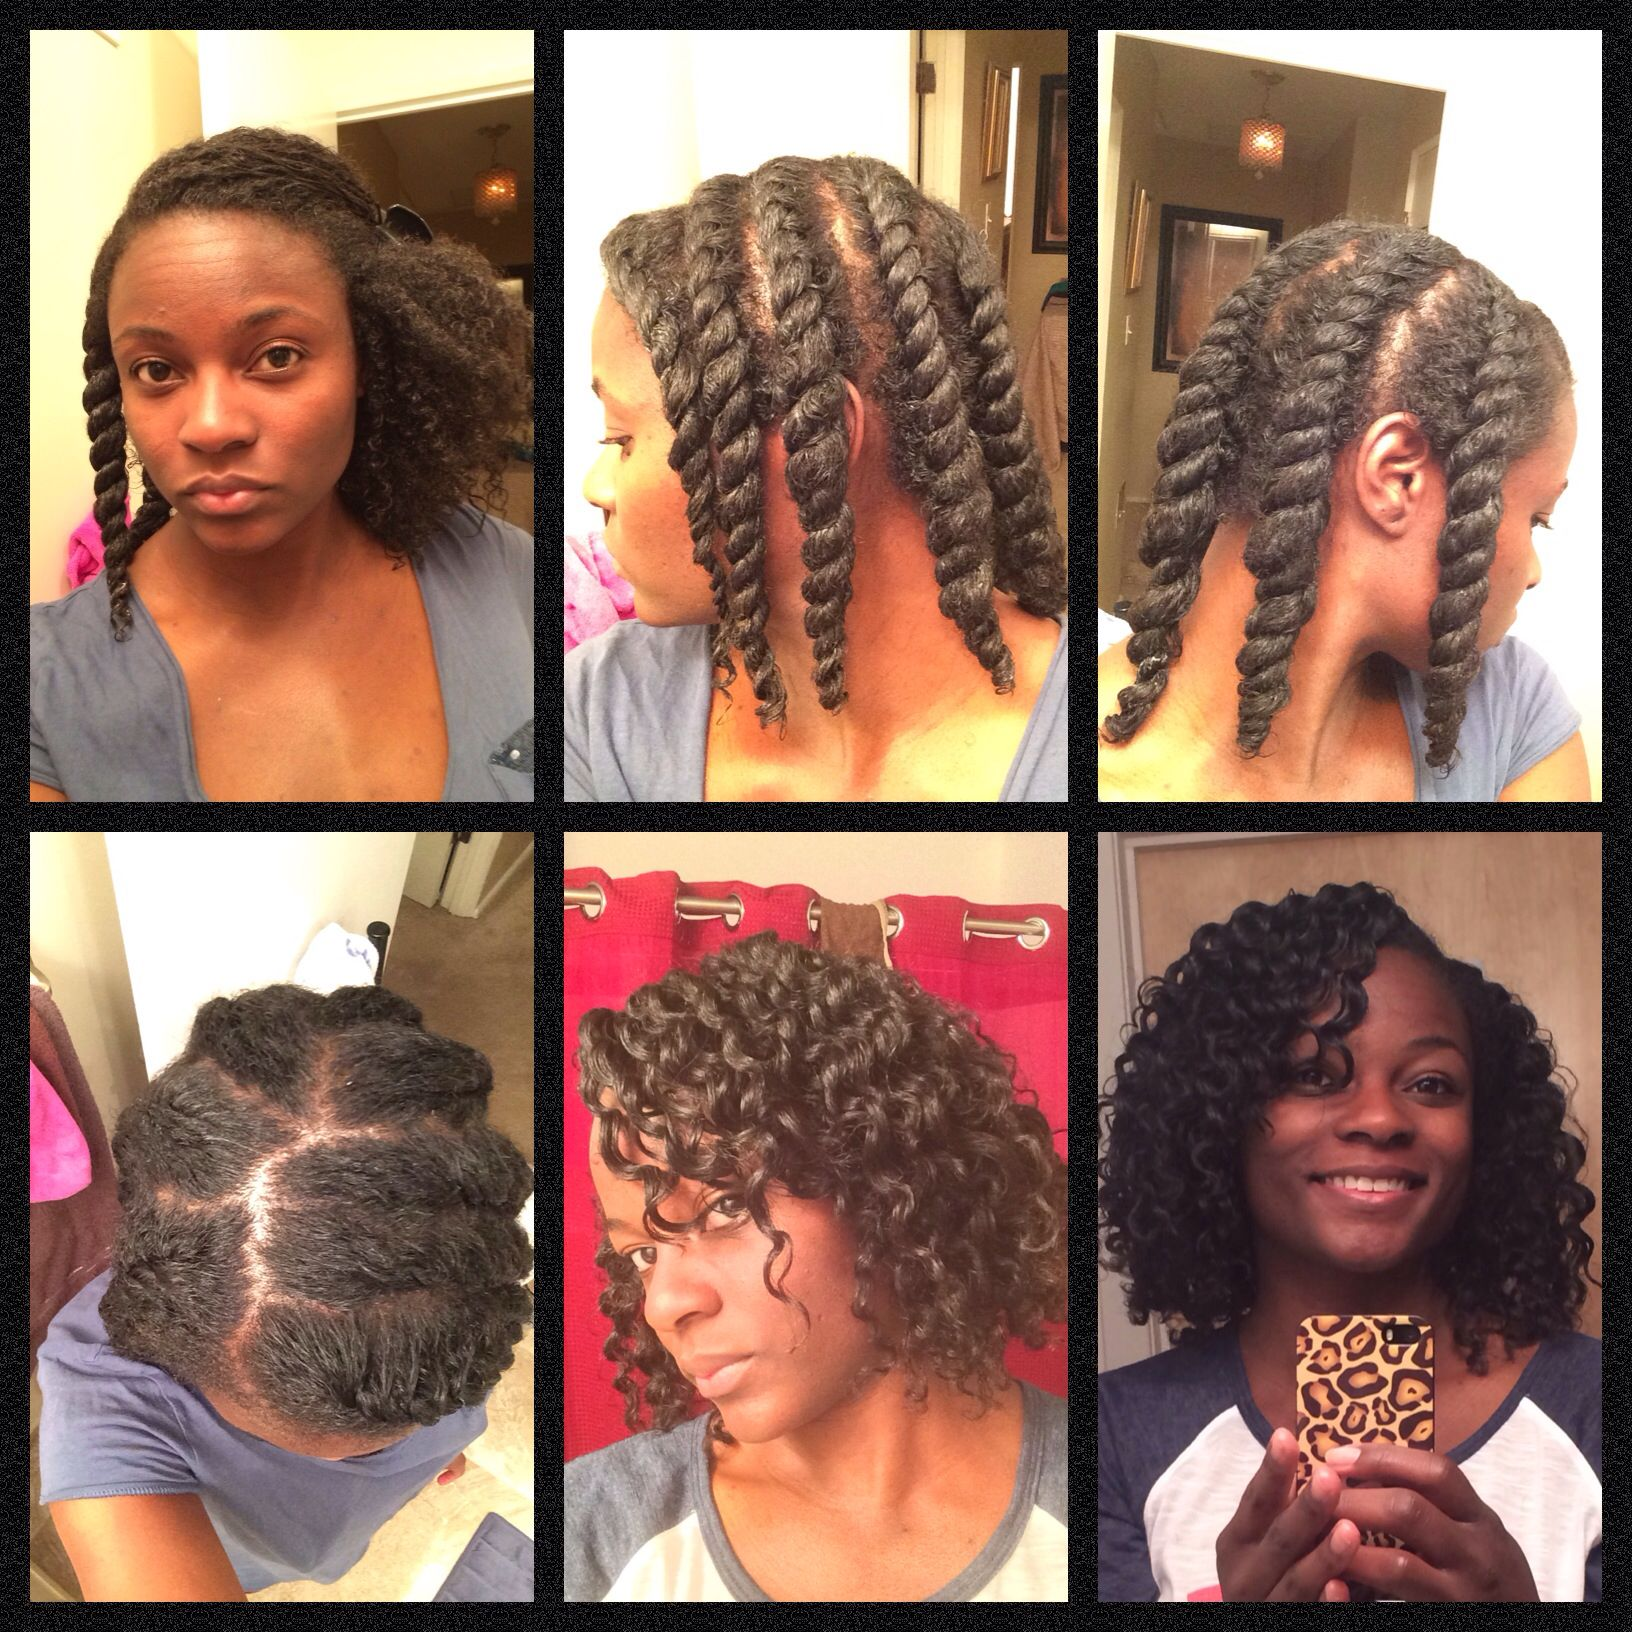 Fabulous Corrine Bailey Rae Inspired Twist Out Hair Styles Natural Hair Styles Natural Hair Twists